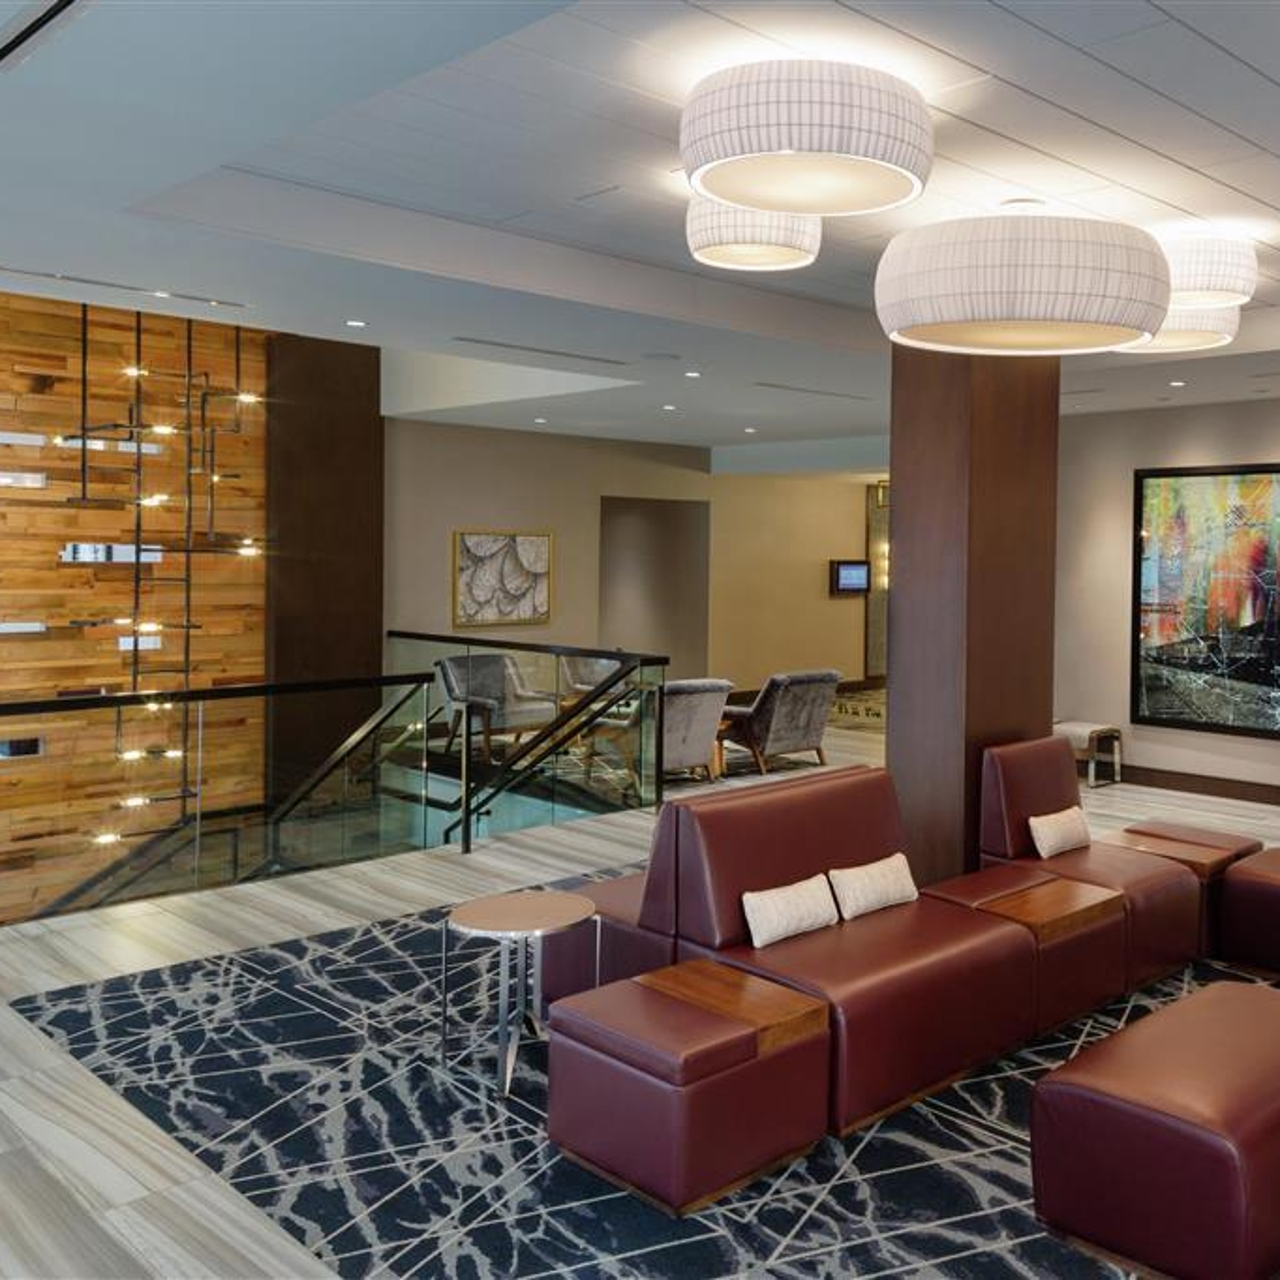 Hotel Doubletree By Hilton Jamestown United States Of America At Hrs With Free Services